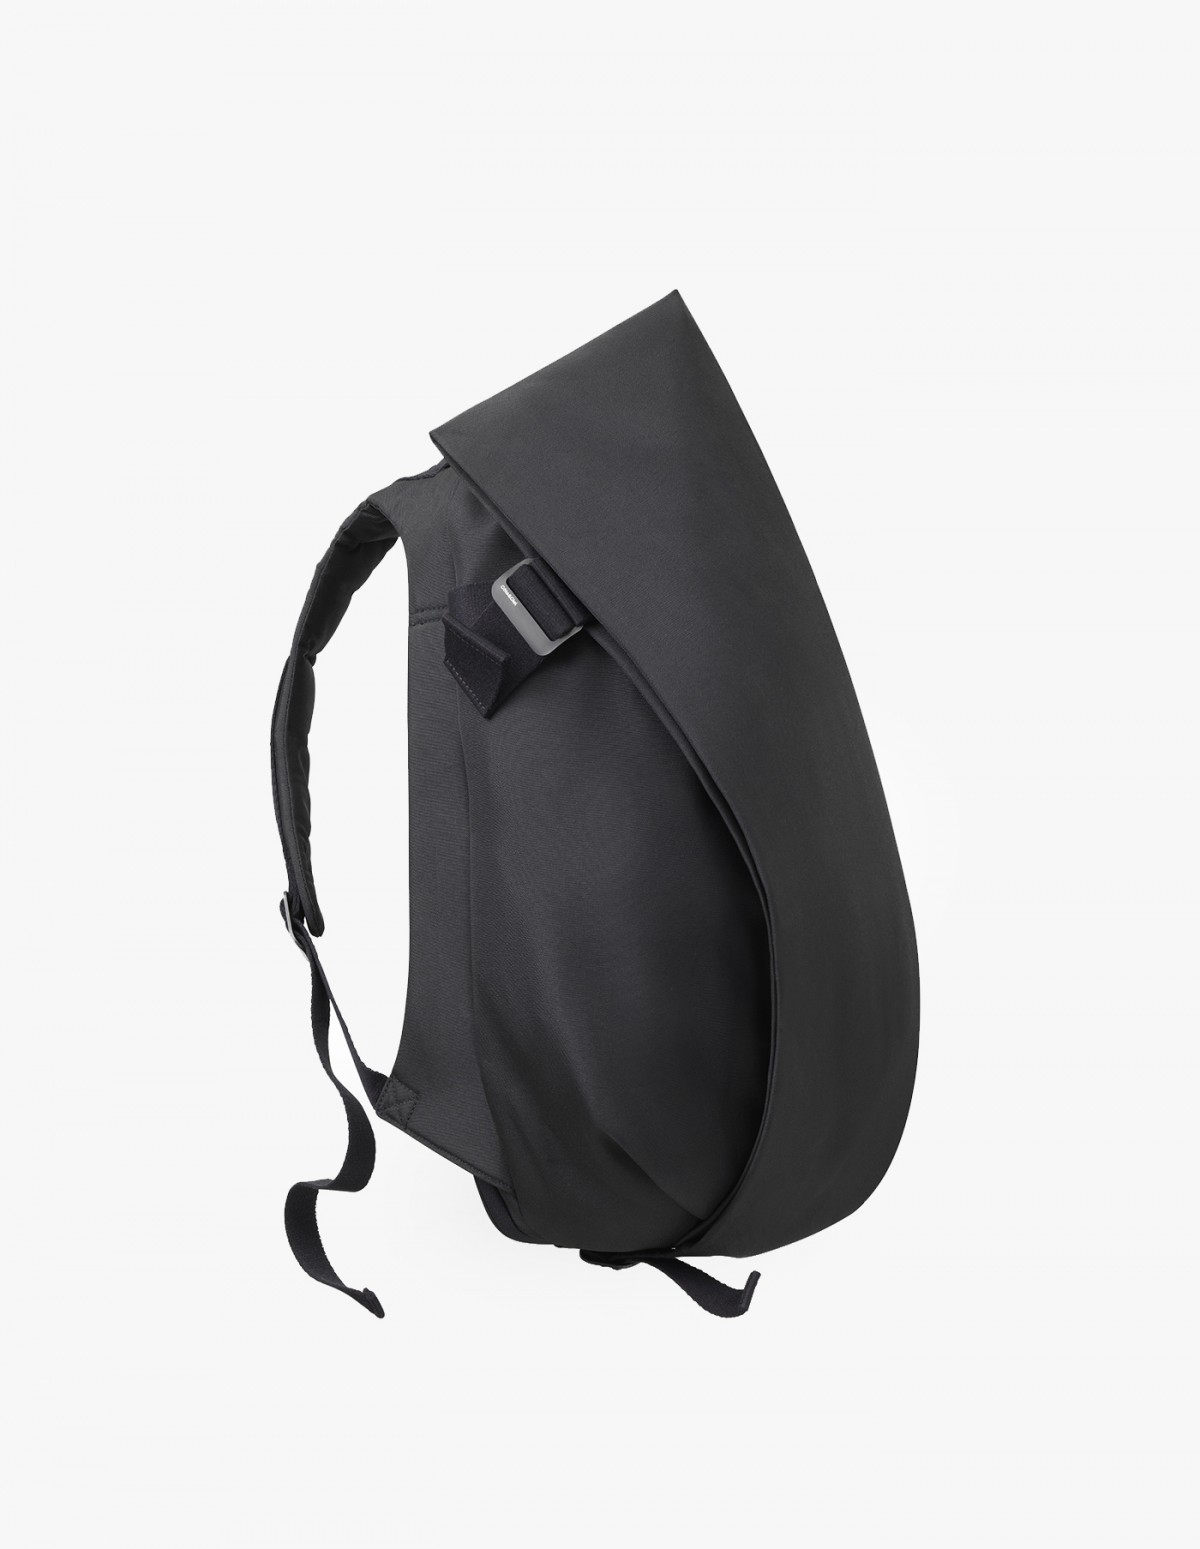 Cote & Ciel Isar Medium Rucksack in Black Eco Yarn